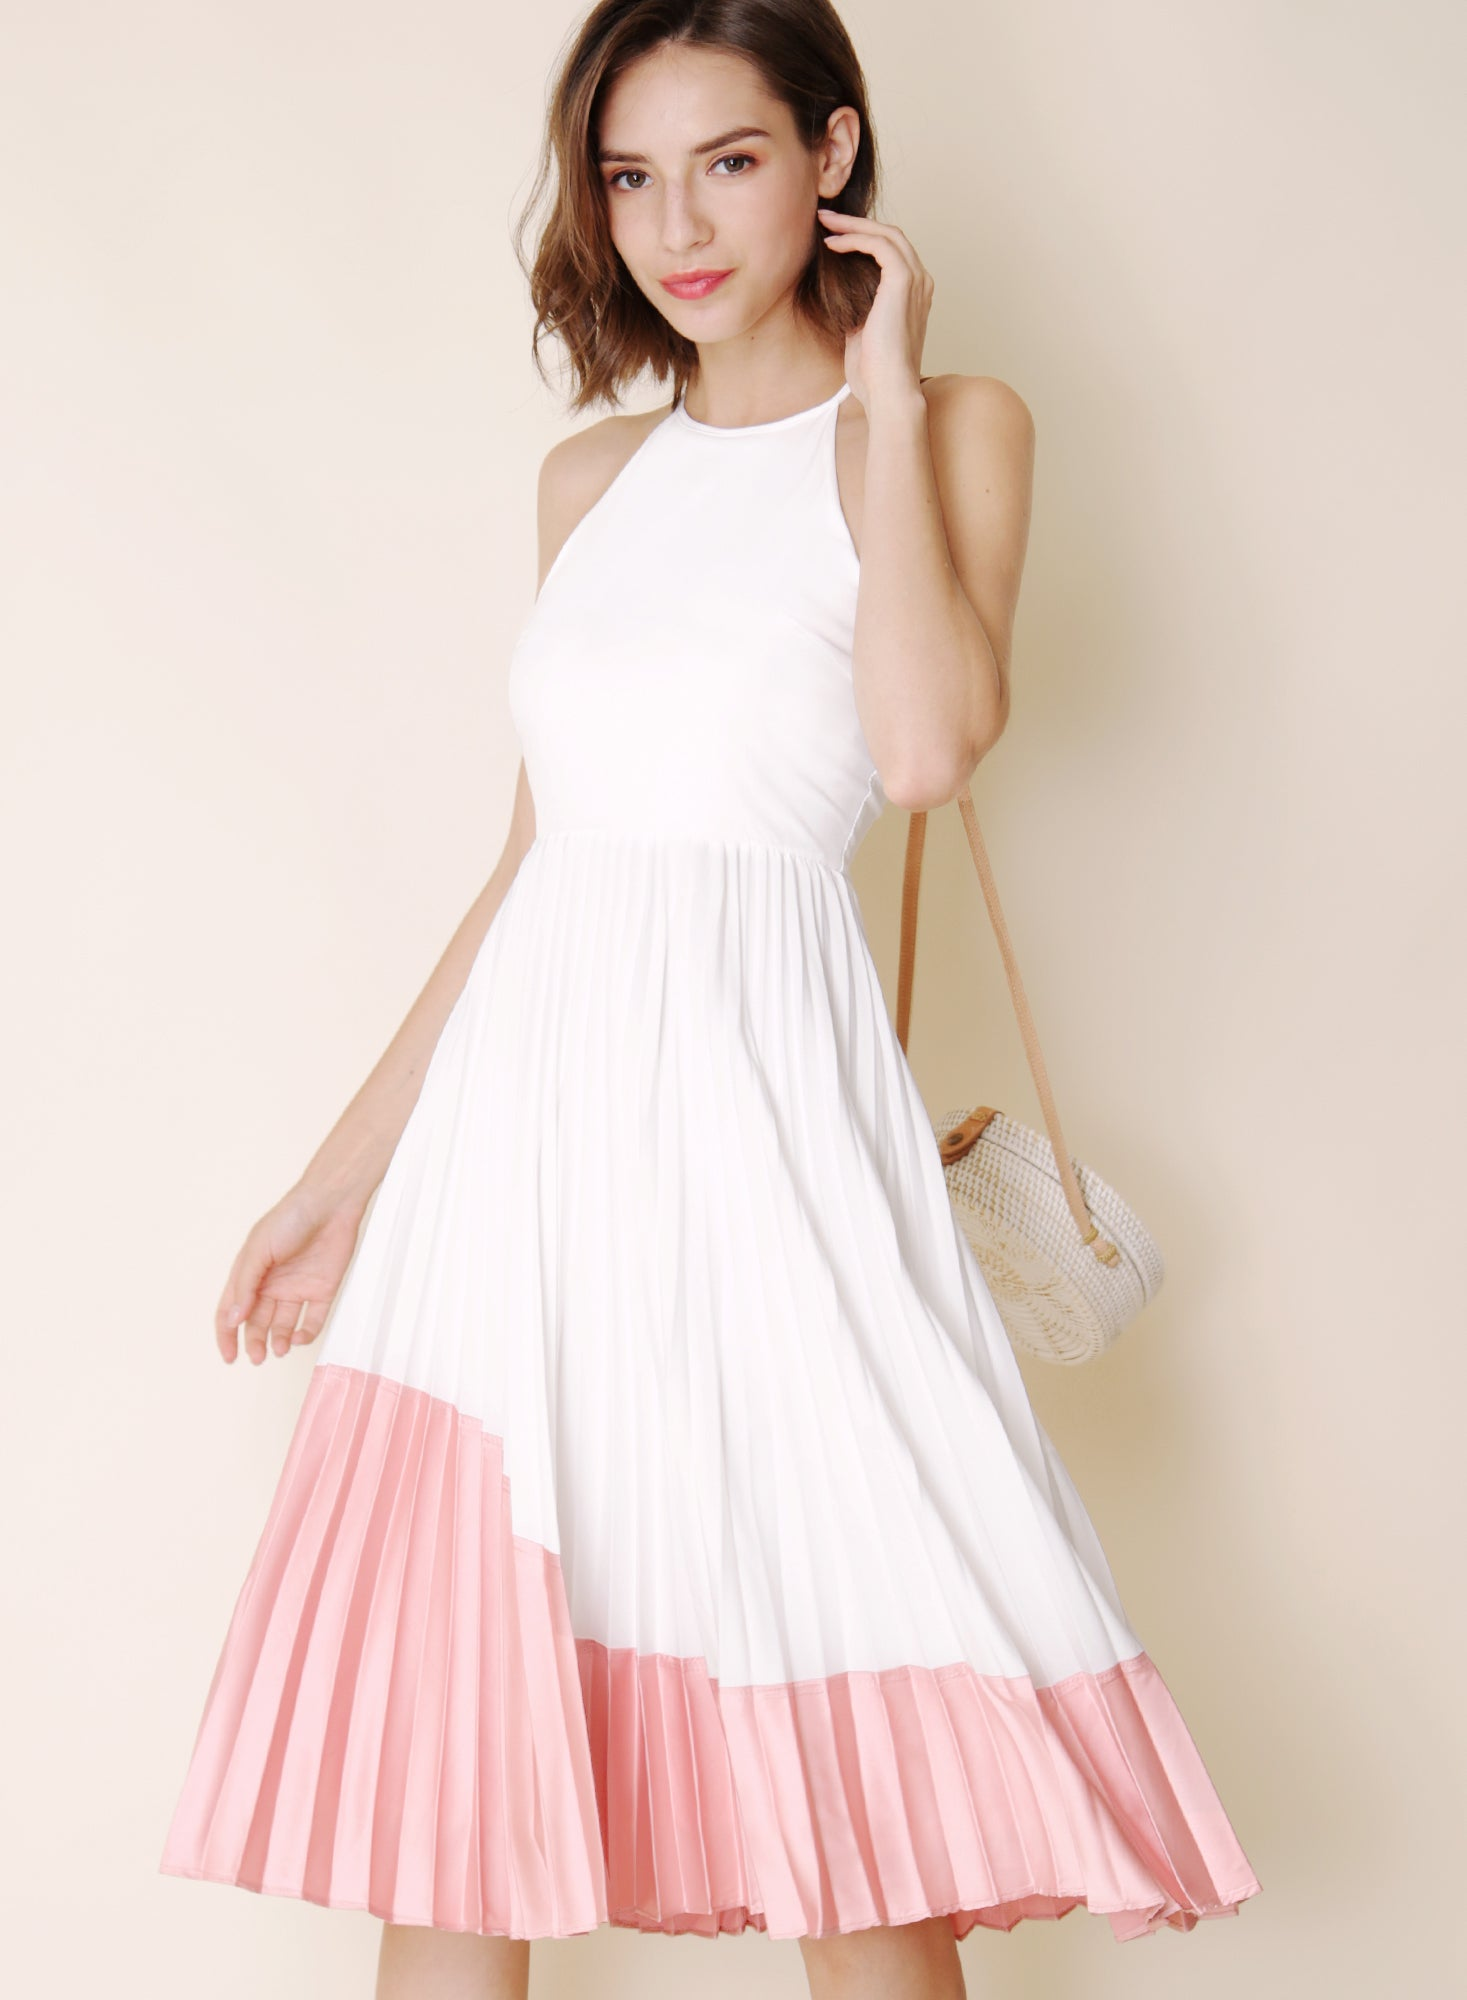 Lavish Duo Tone Pleats Dress (White/Pink) at $44.50 only sold at And Well Dressed Online Fashion Store Singapore